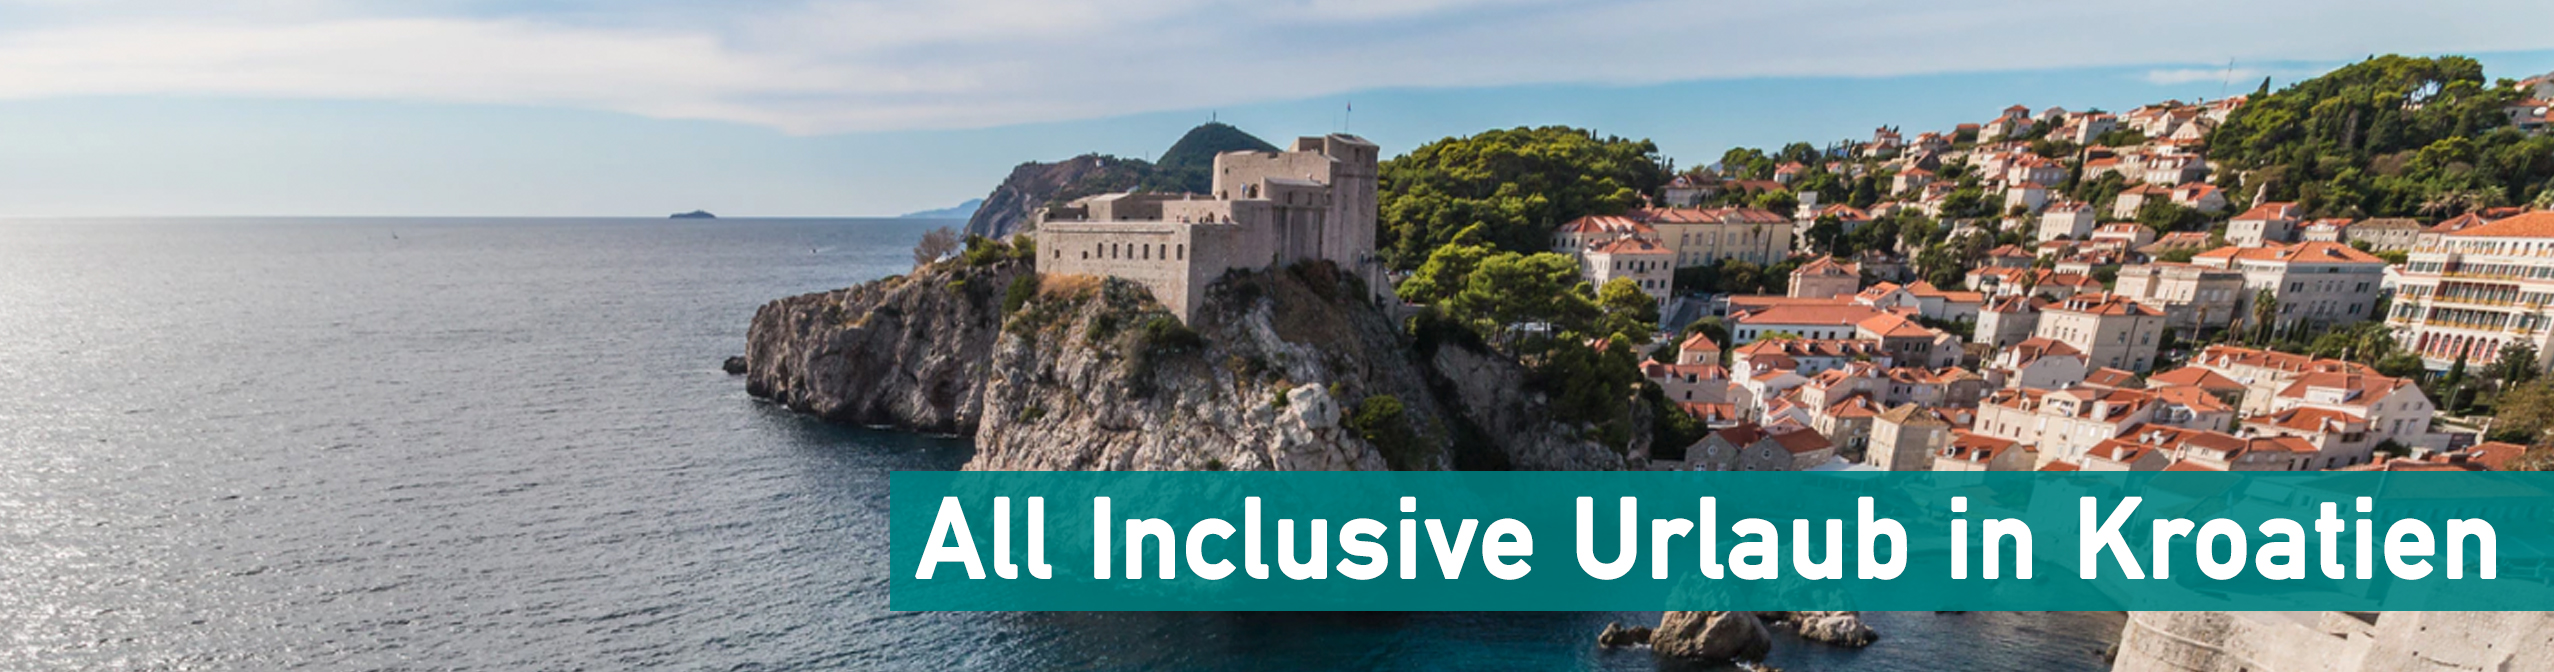 All Inclusive Urlaub Kroatien